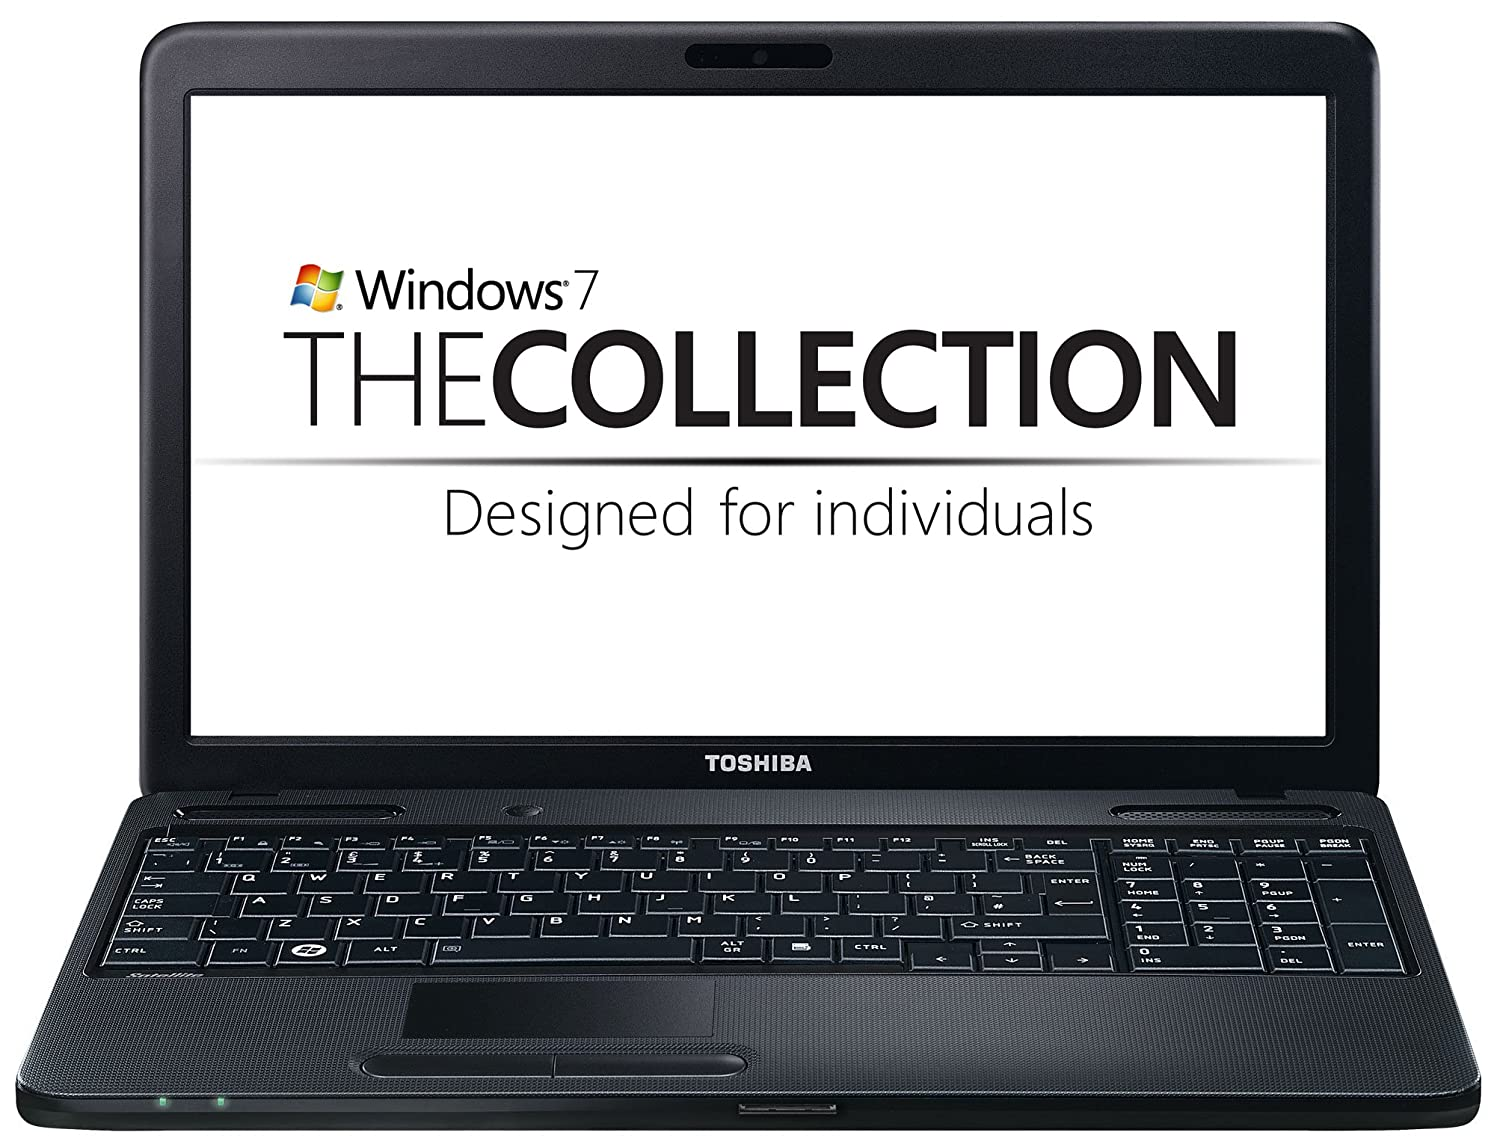 TOSHIBA SATELLITE C660 INTEL STORAGE MANAGER TREIBER WINDOWS 8